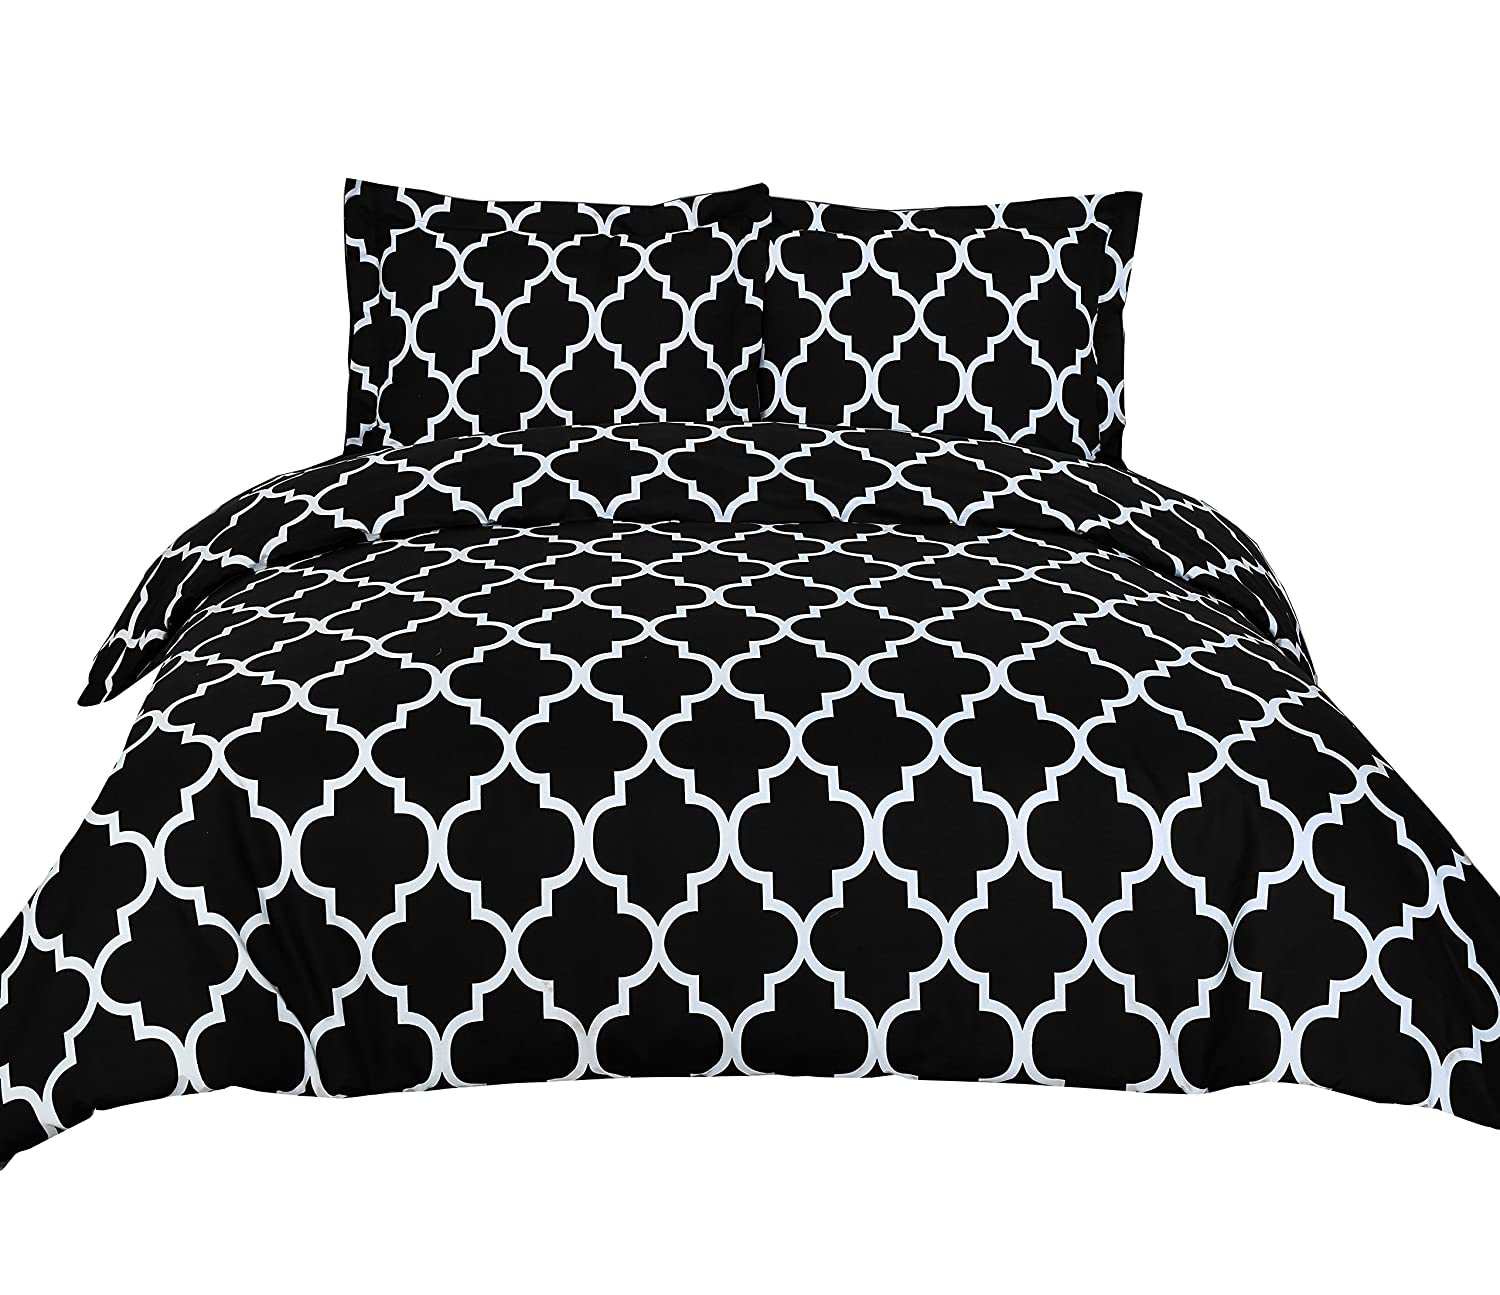 3 Piece Duvet Cover Set Queen, Black